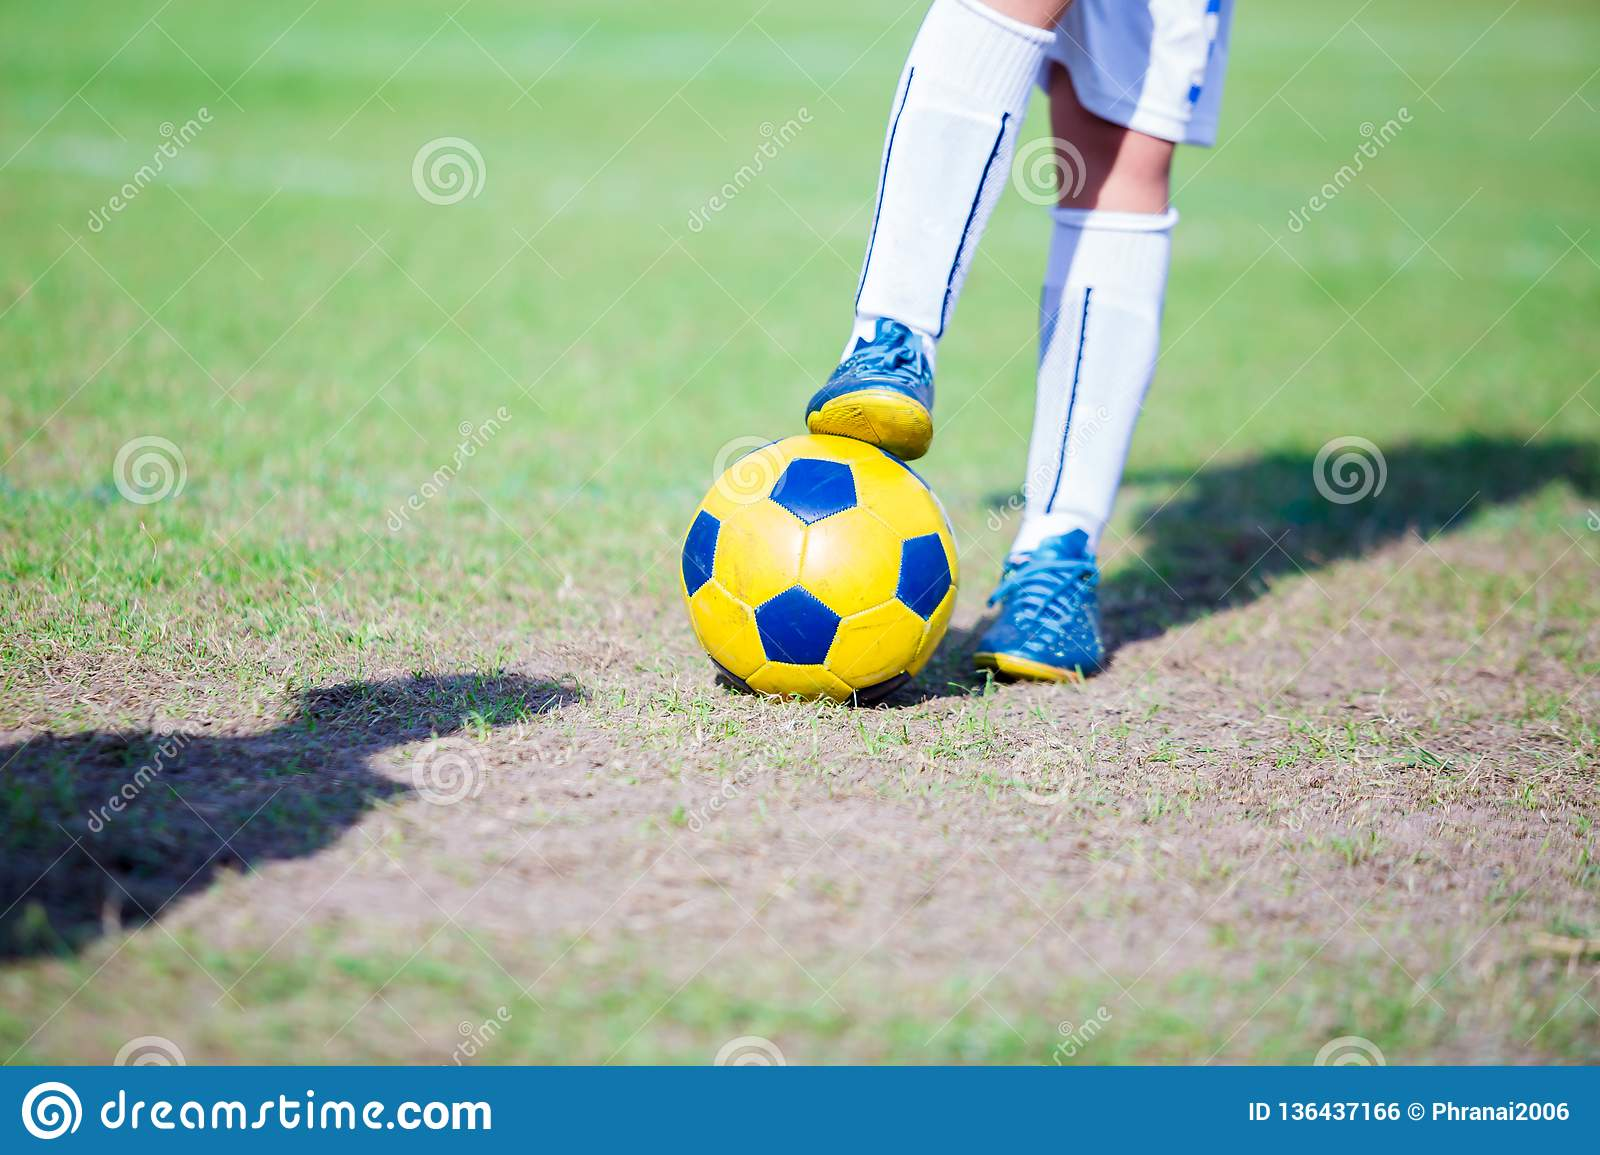 Kid football player standing and stepping on the ball